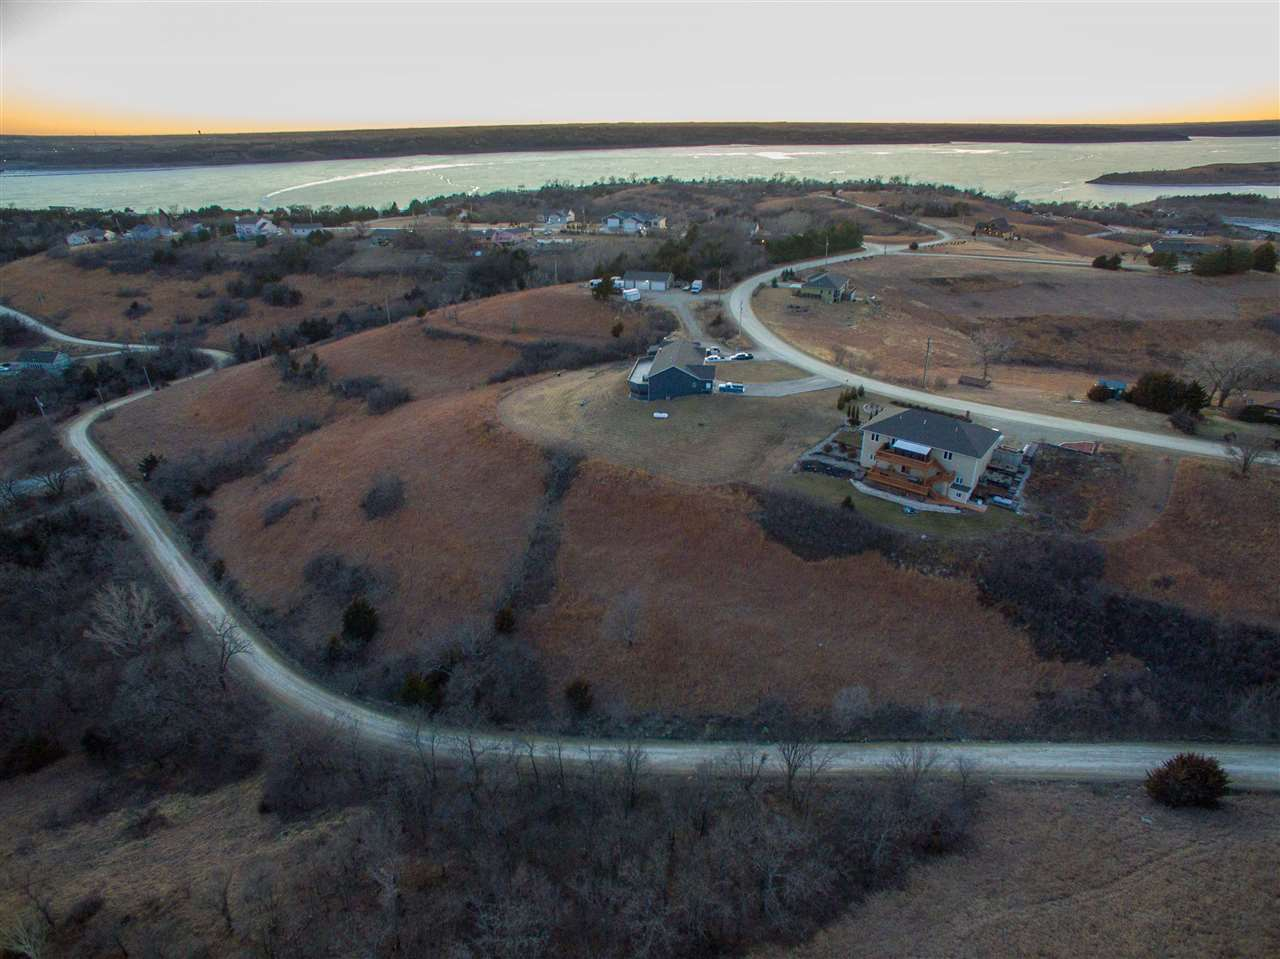 Here is the lot you have been waiting for!! Build your dream home w/ lake living at its finest! Spectacular views of the rolling hills on an almost an acre lot! This piece of property is priced to sell! Contact Casey Maransani at 620-232-0822 or casey_maransani@hotmail.com for more information.